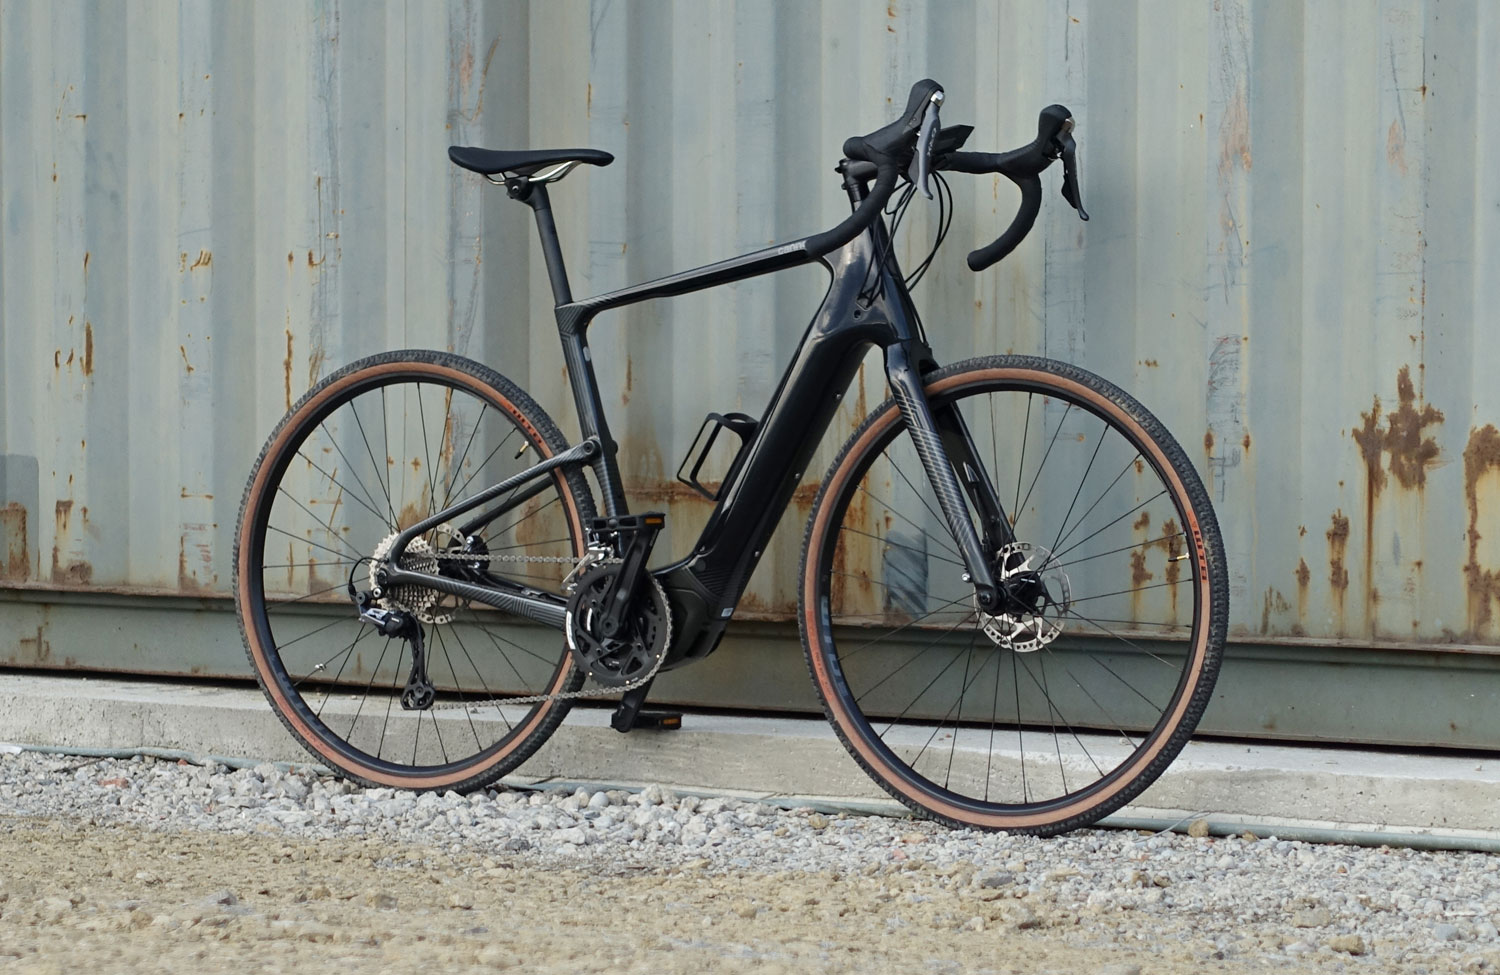 The fun to ride-machine: Cannondale's Topstone Neo Carbon 2 tested